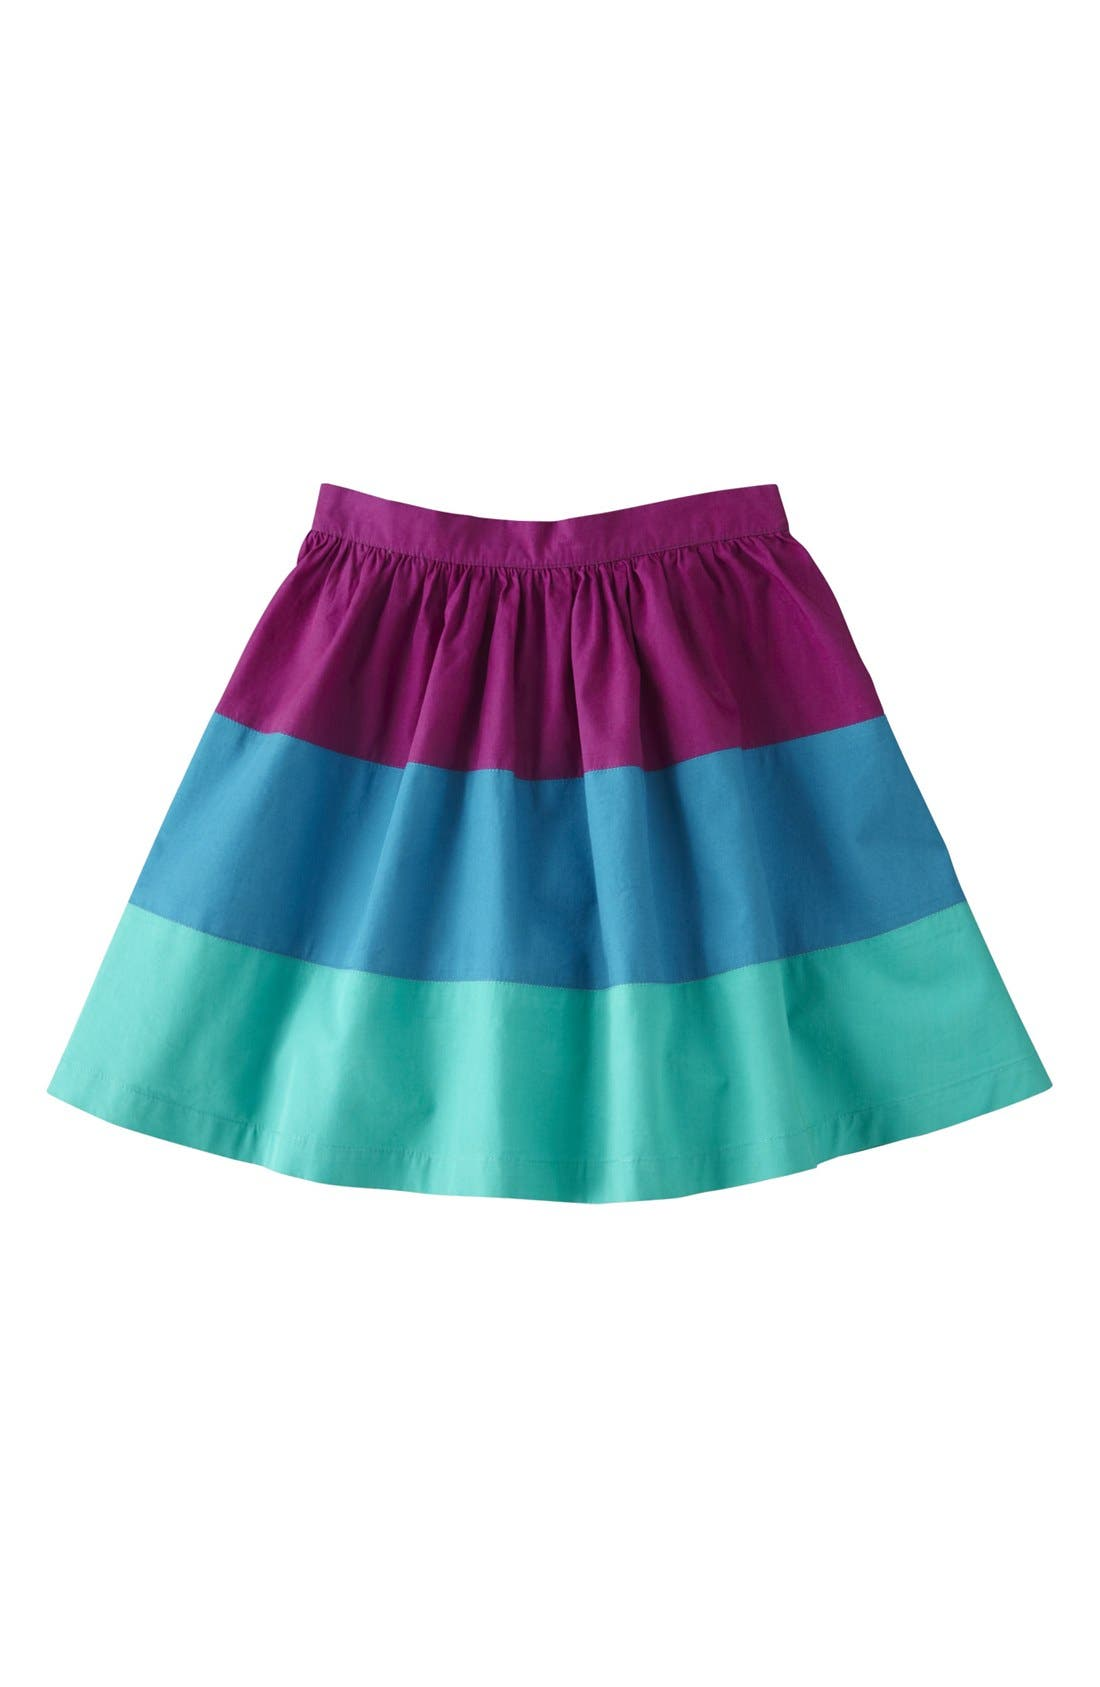 Alternate Image 1 Selected - Mini Boden Colorblock Skirt (Toddler Girls, Little Girls & Big Girls)